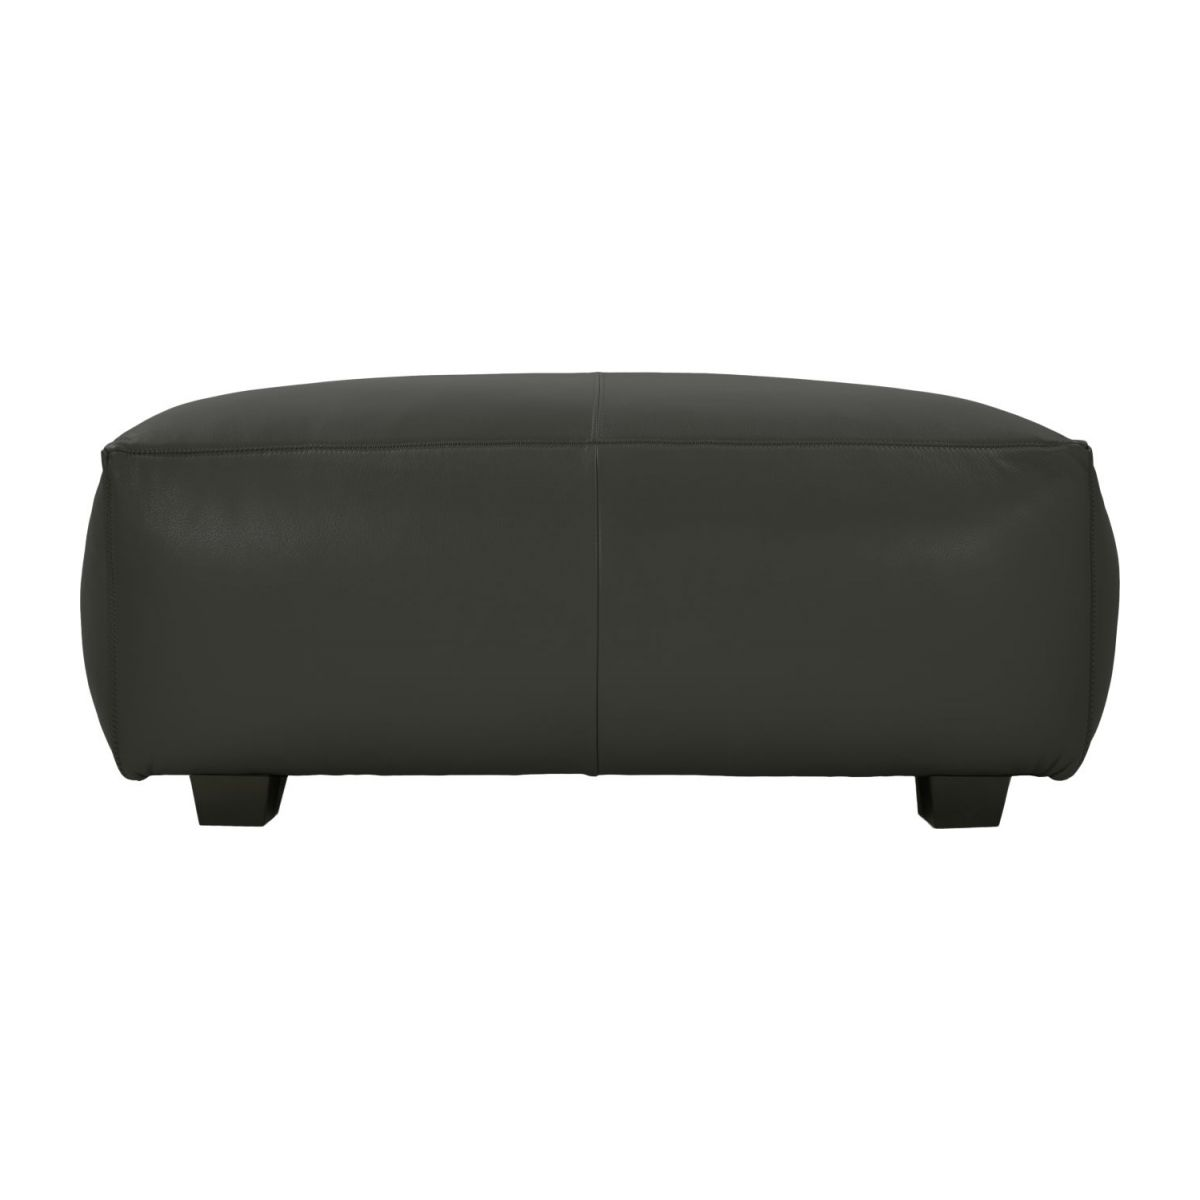 Footstool in Savoy semi-aniline leather, grey  n°2